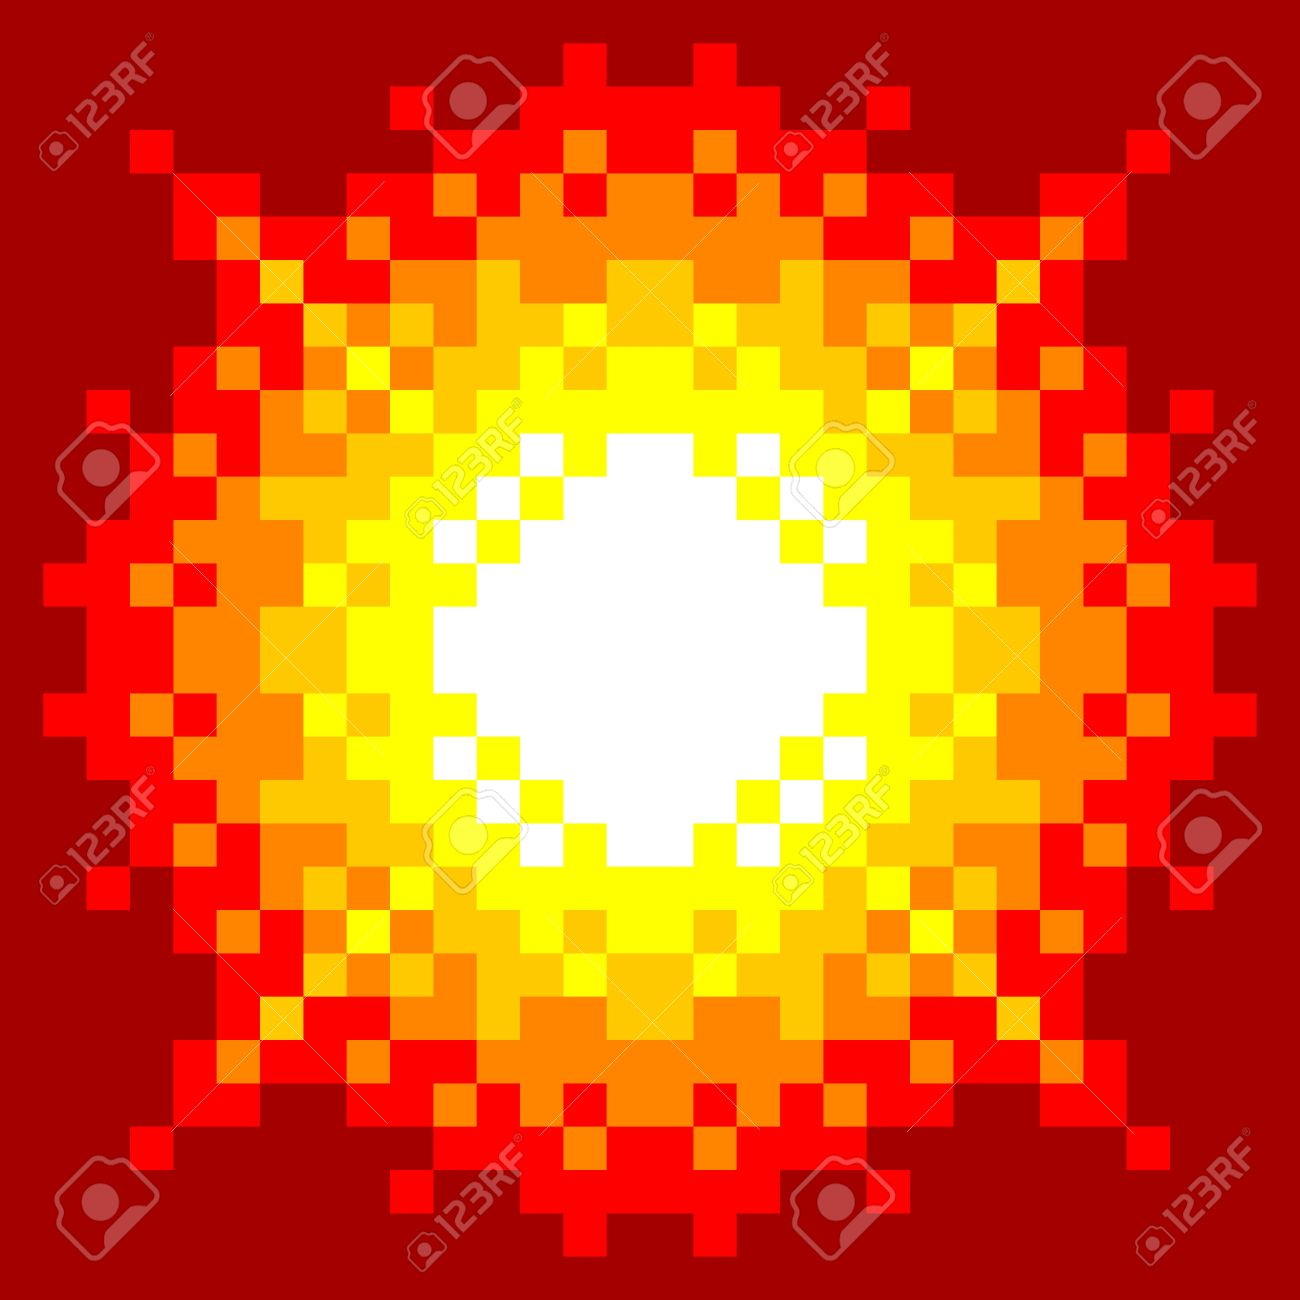 8-Bit Pixel-art Explosion on a Red Background Stock Vector - 21410611